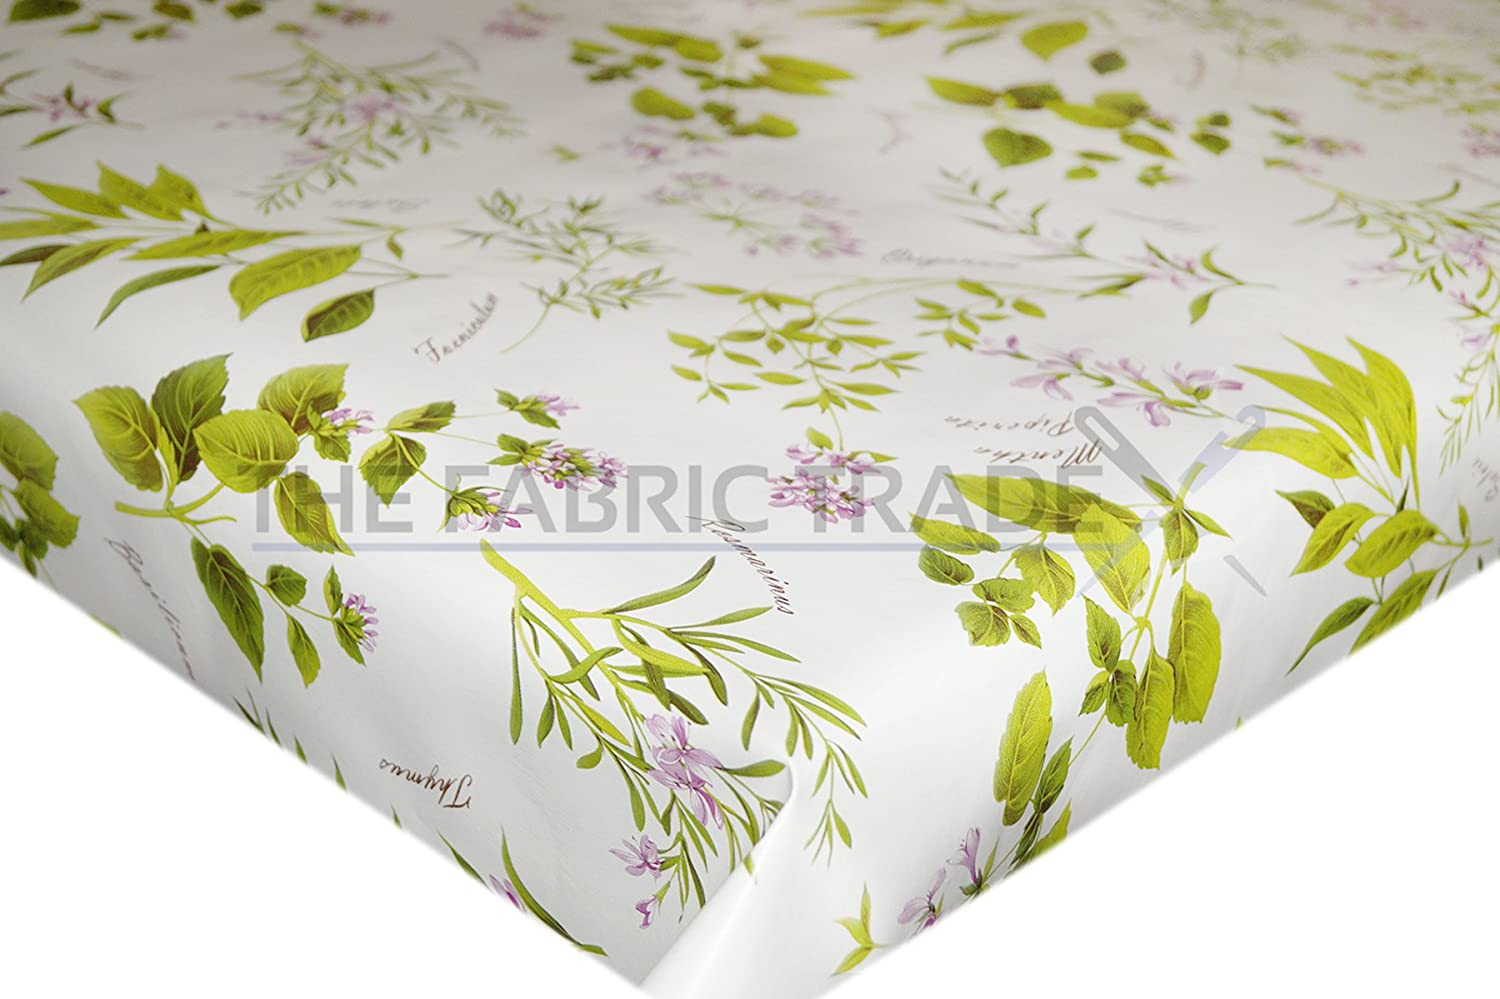 Green Herb Plant Garden Wipe Clean PVC Tablecloth Vinyl Oilcloth Kitchen Table Cover Protector 50 x 140cm